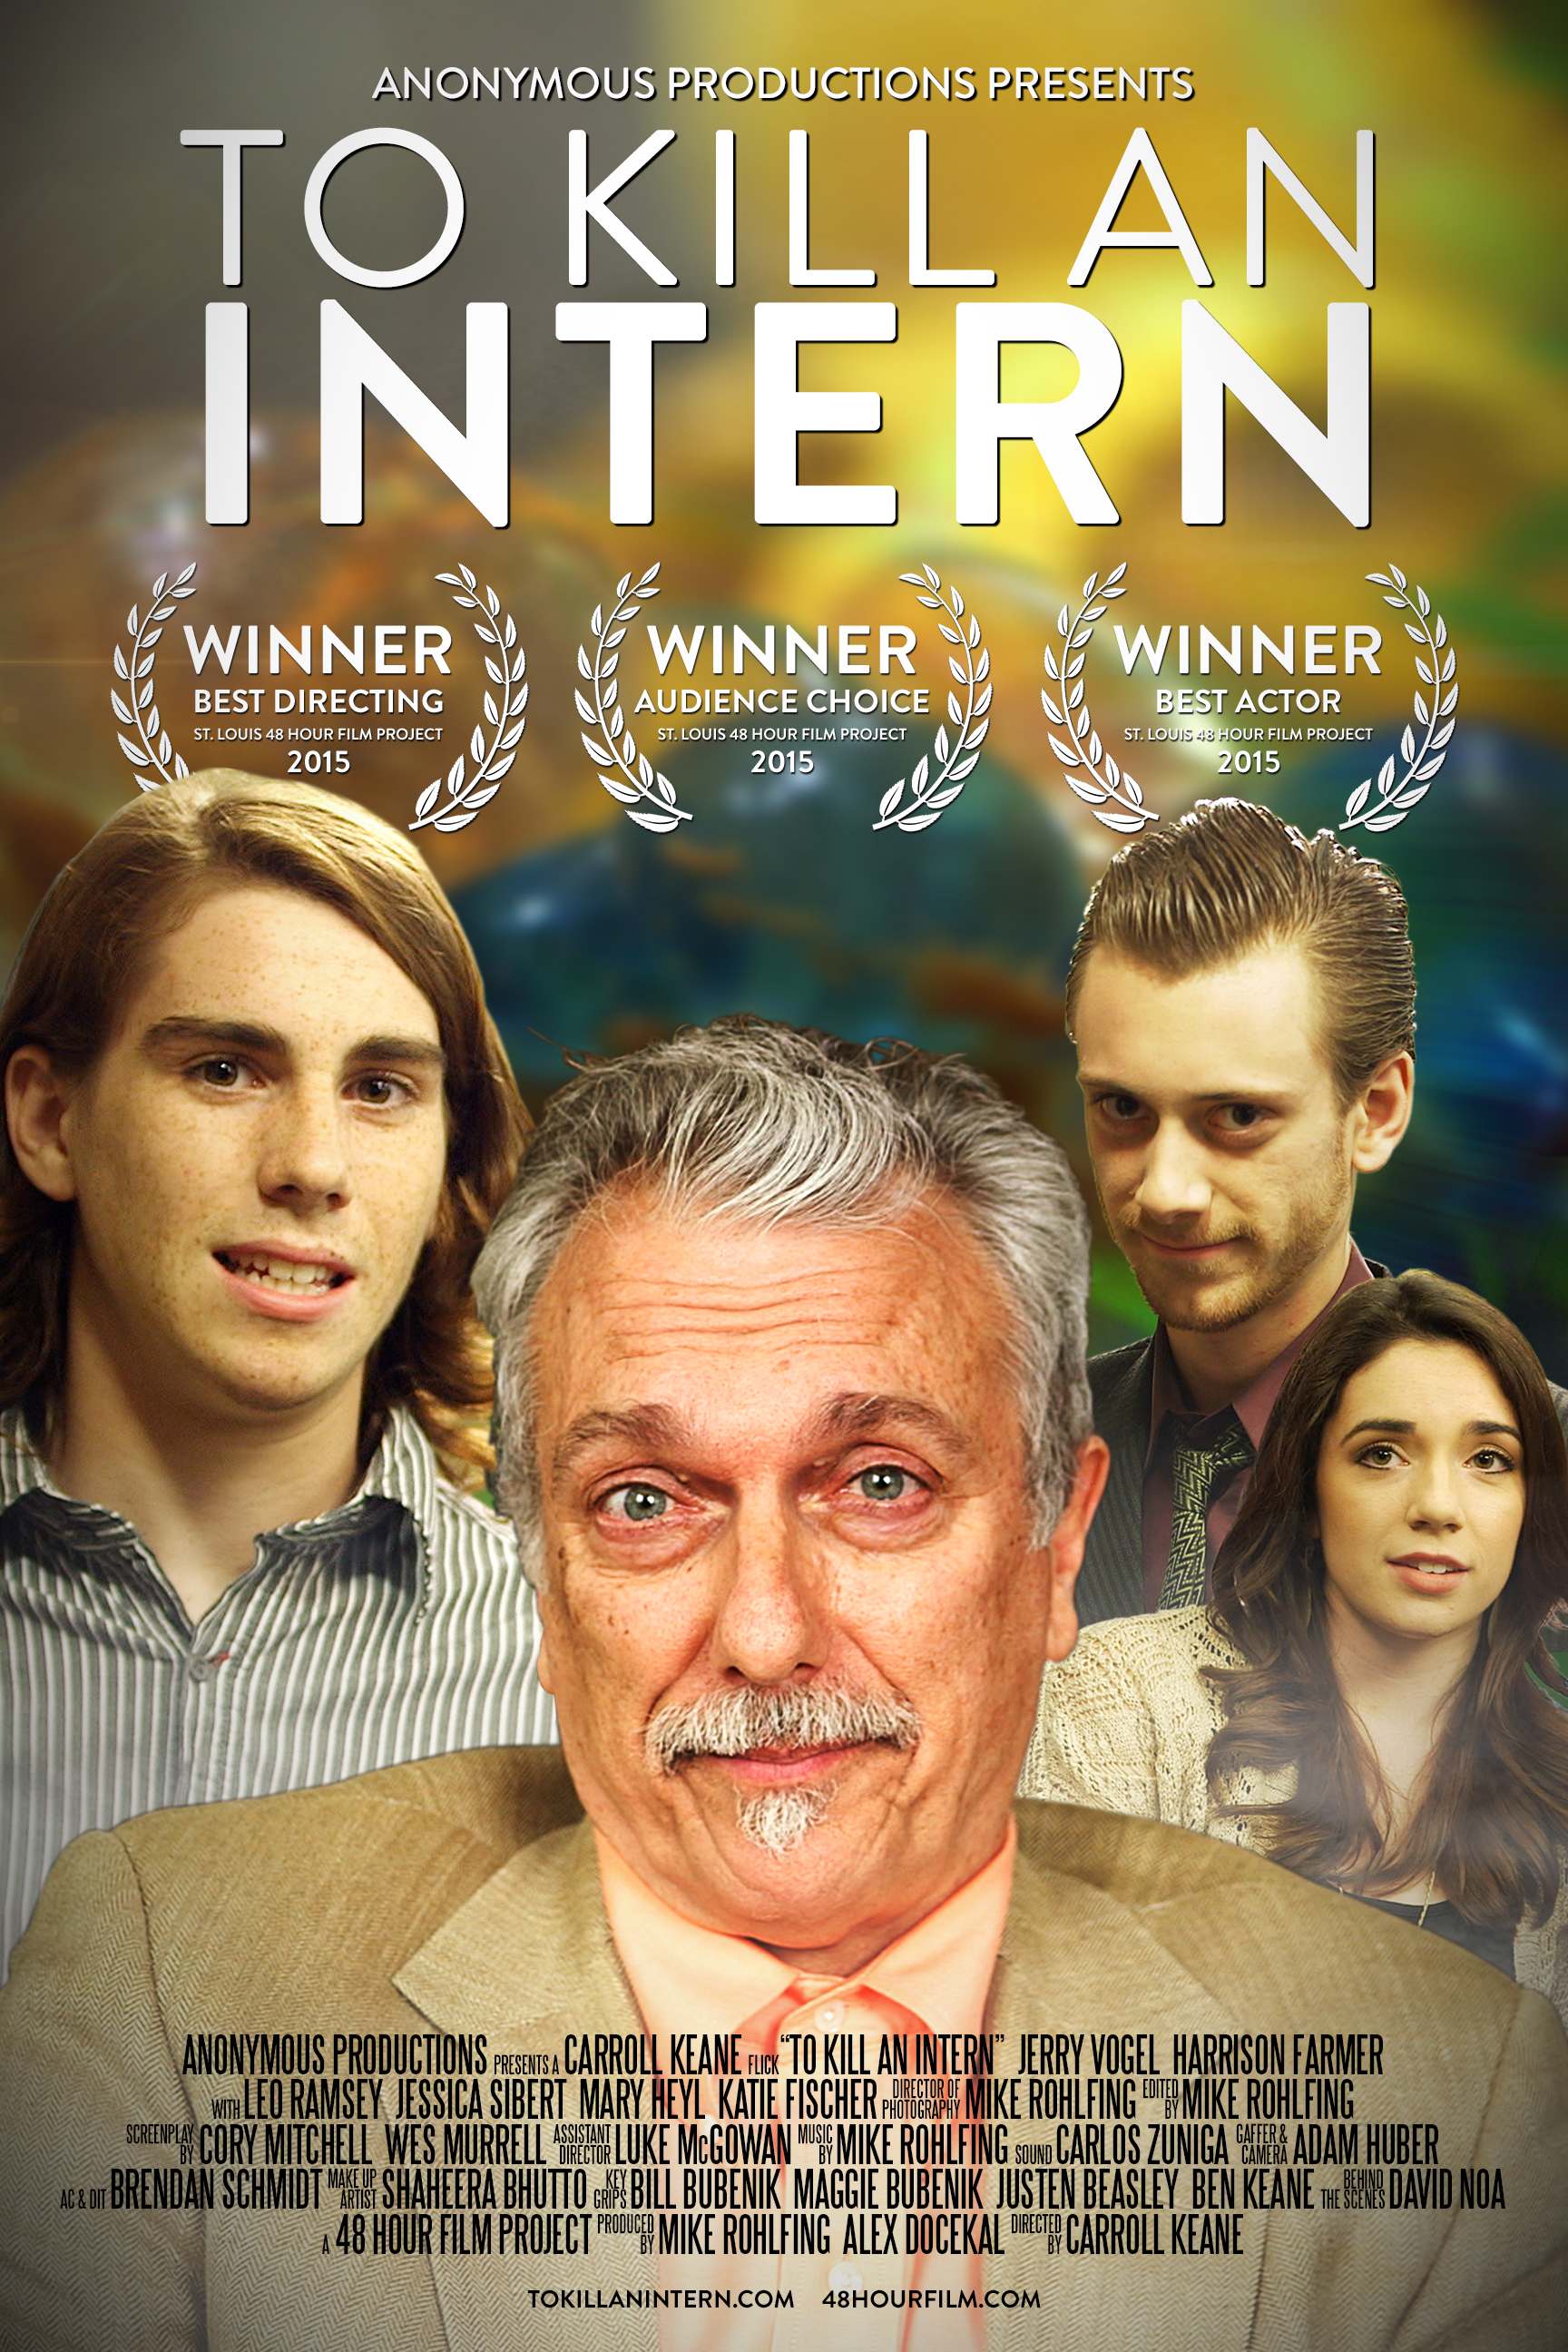 To Kill An Intern Poster 02 REV Small.jpg